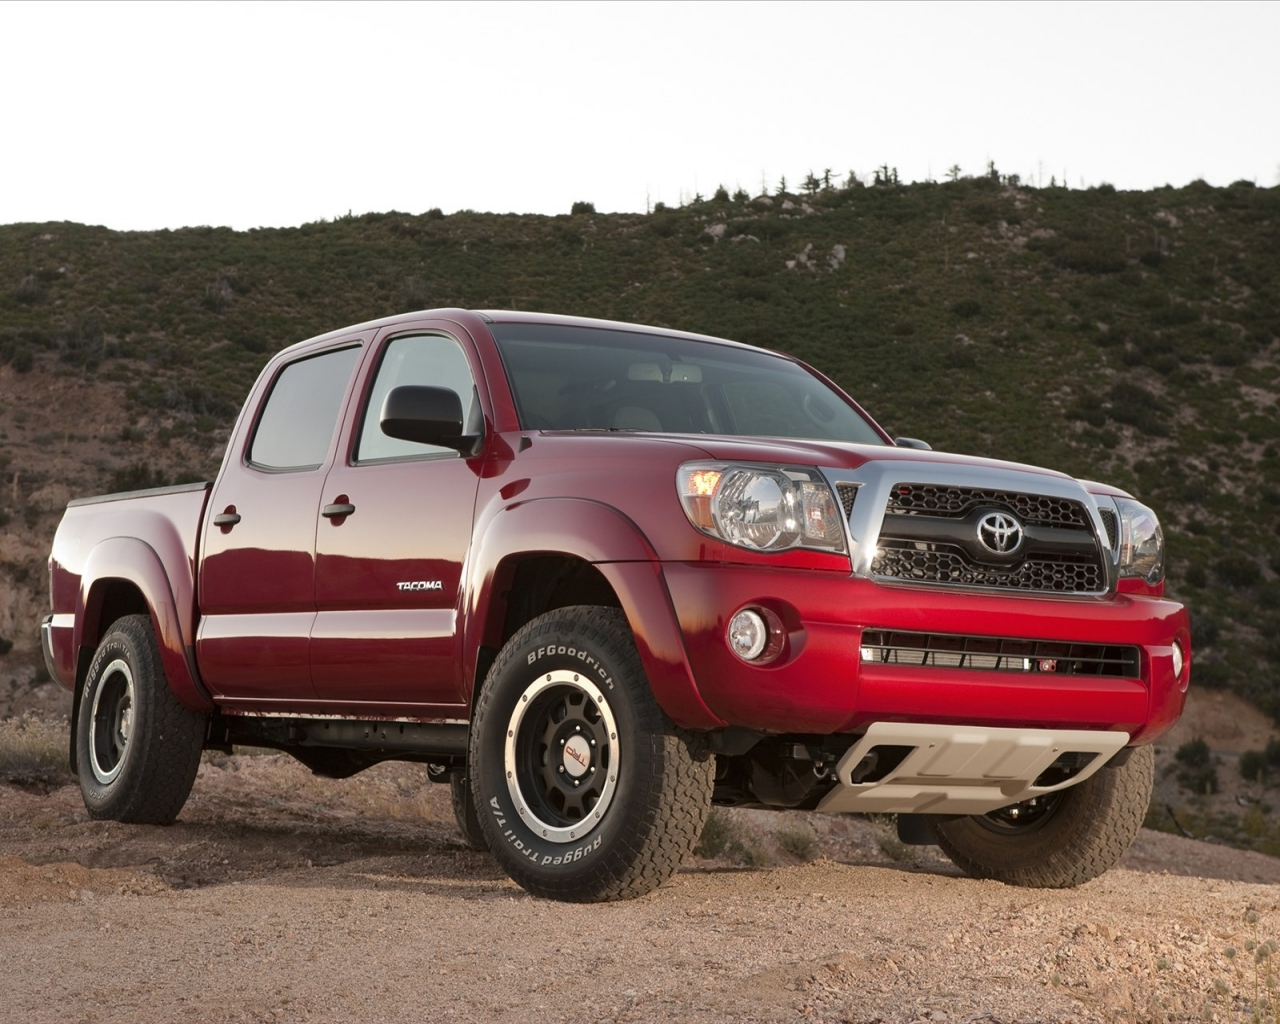 Toyota Tacoma 2011 Todo Wallpapers 1280x1024